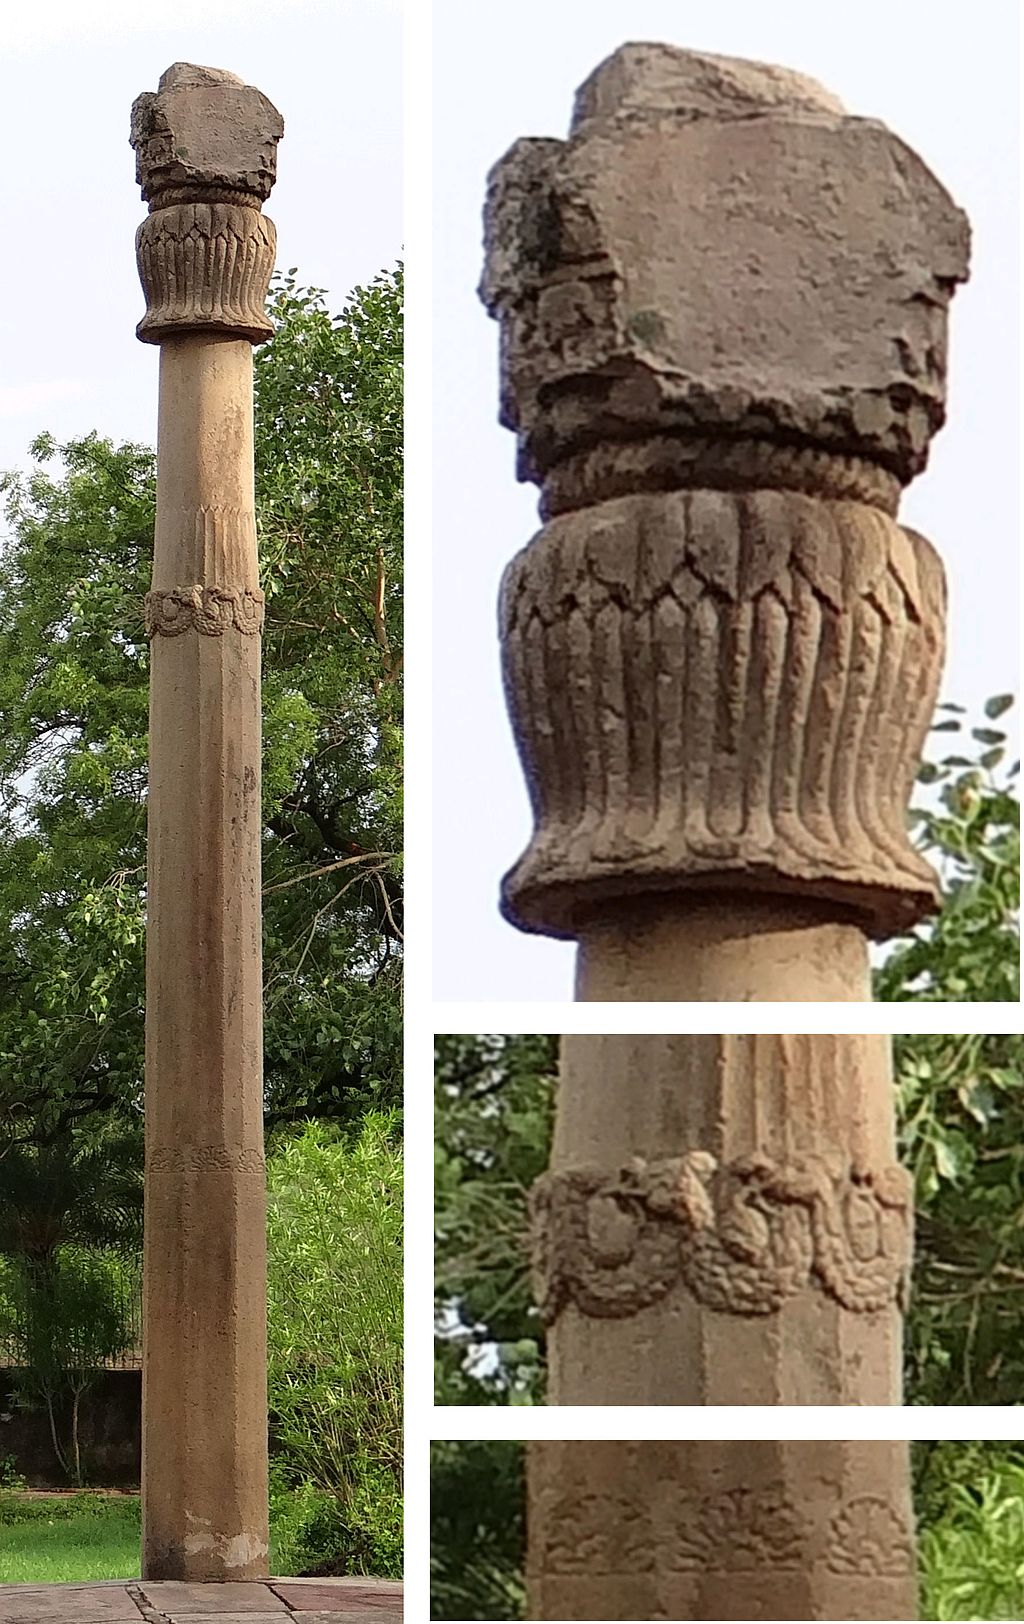 Decorative elements on the pillar. Credit: Wikimedia Commons